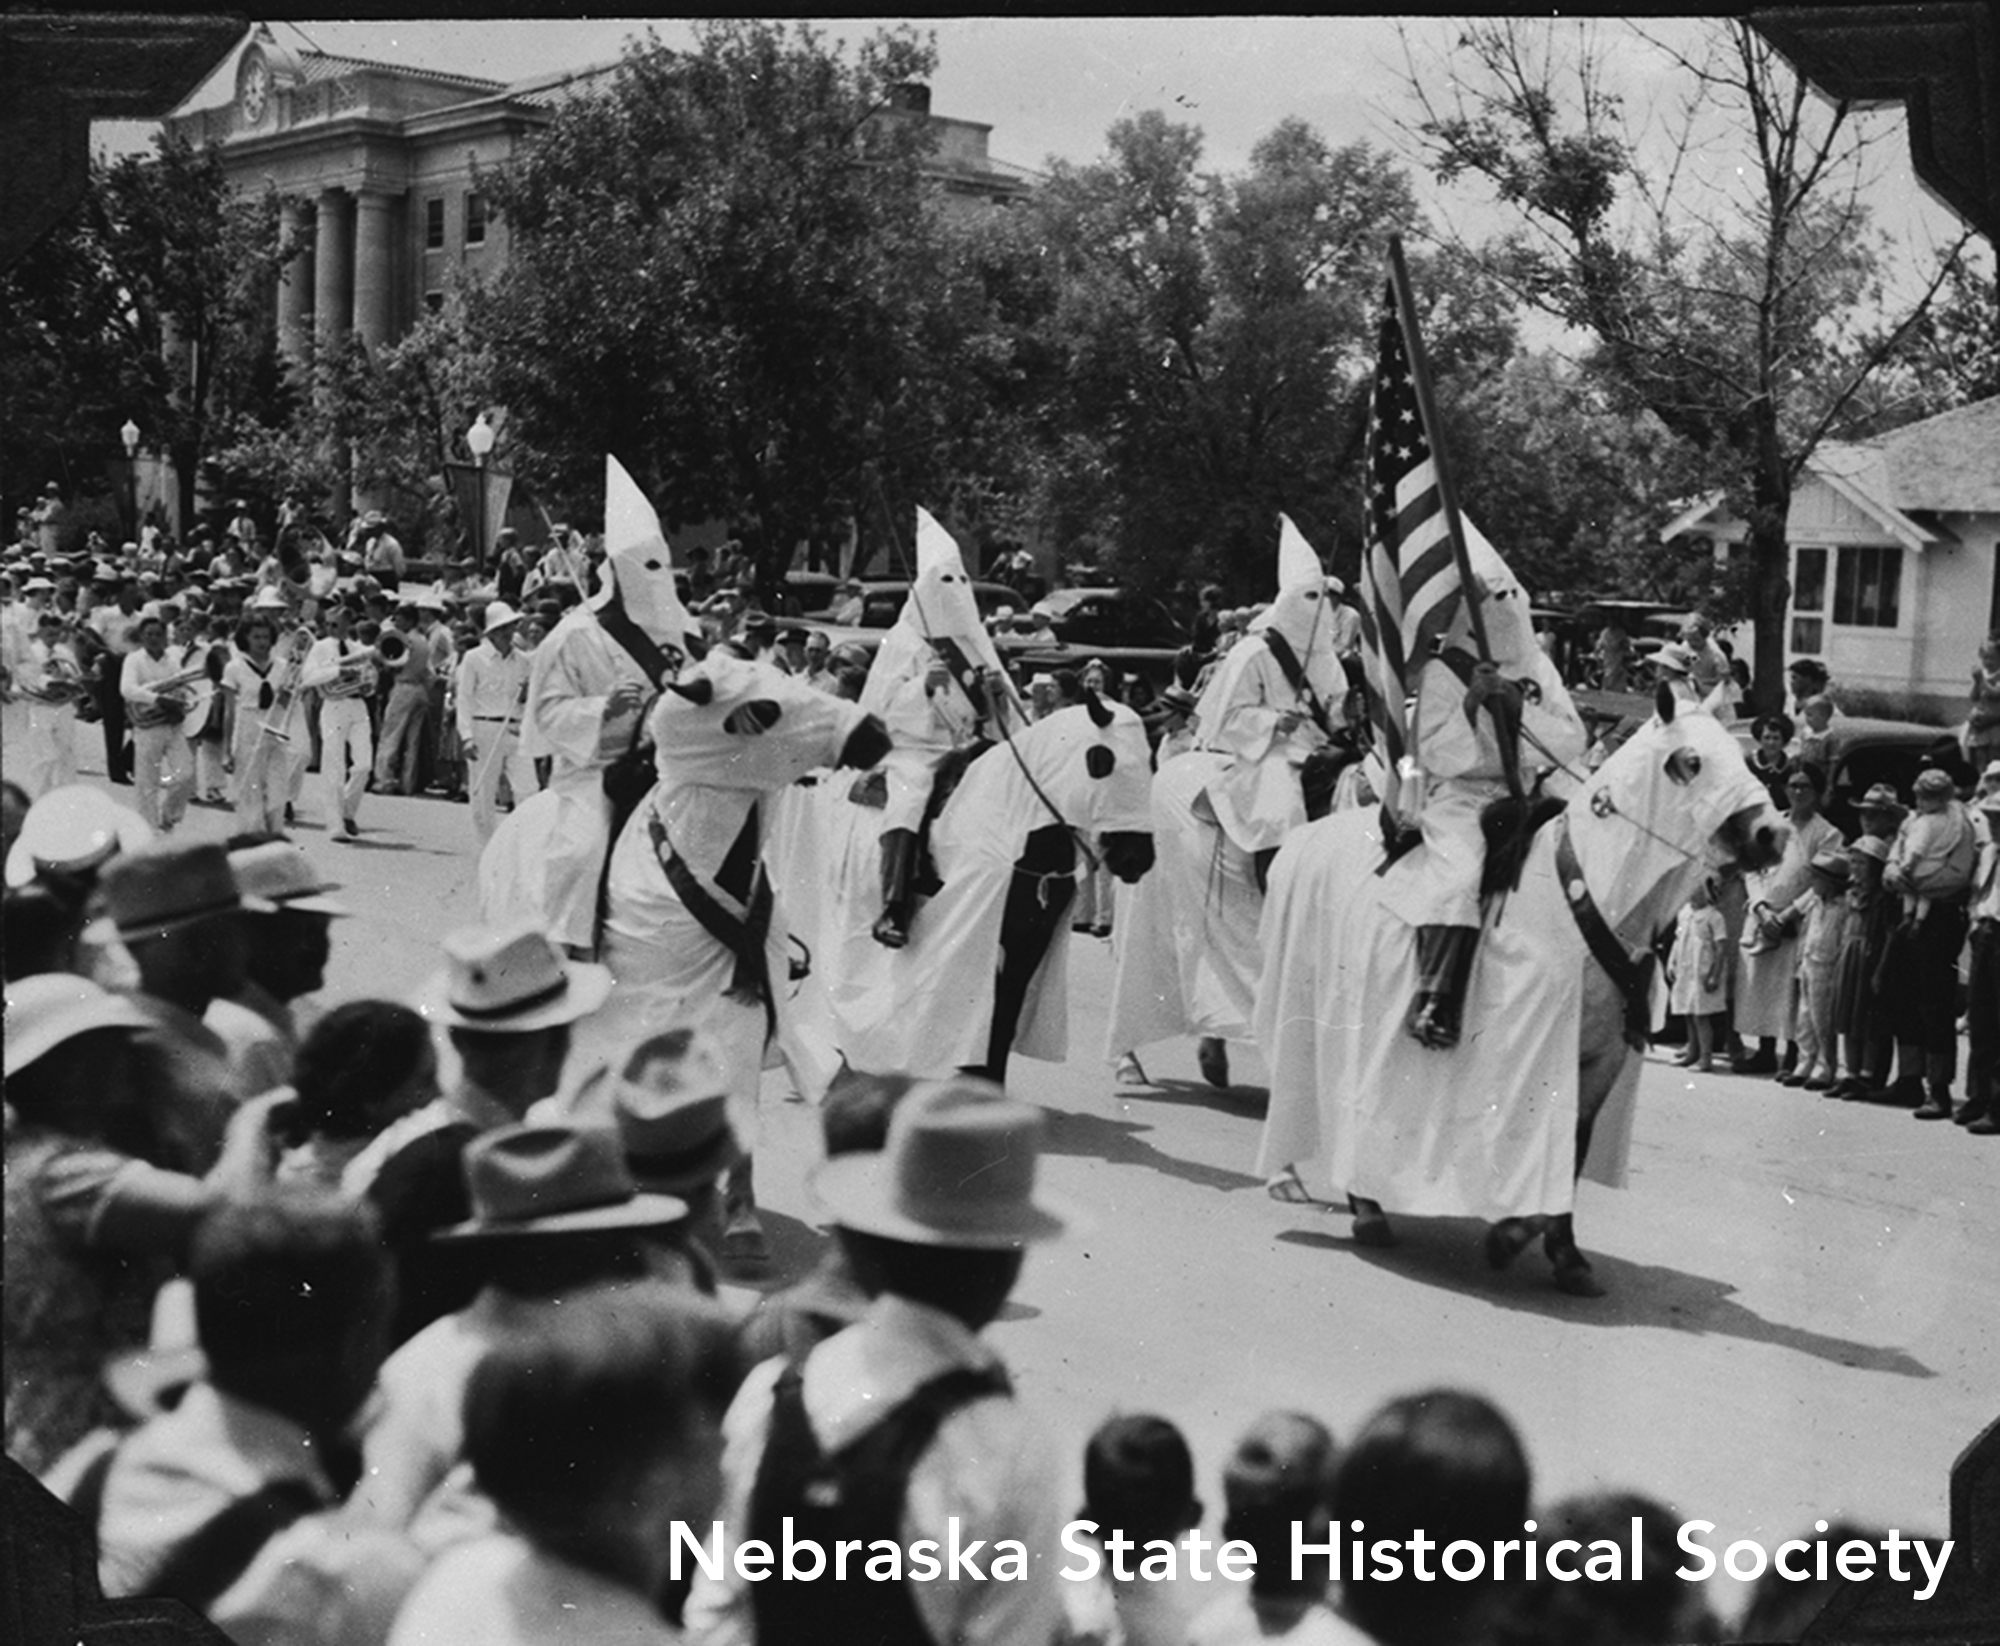 essay on klu klux klan This site looks at politics, broadly construed, through the prism of the klu klux klan its by 1926, in his north american review essay.